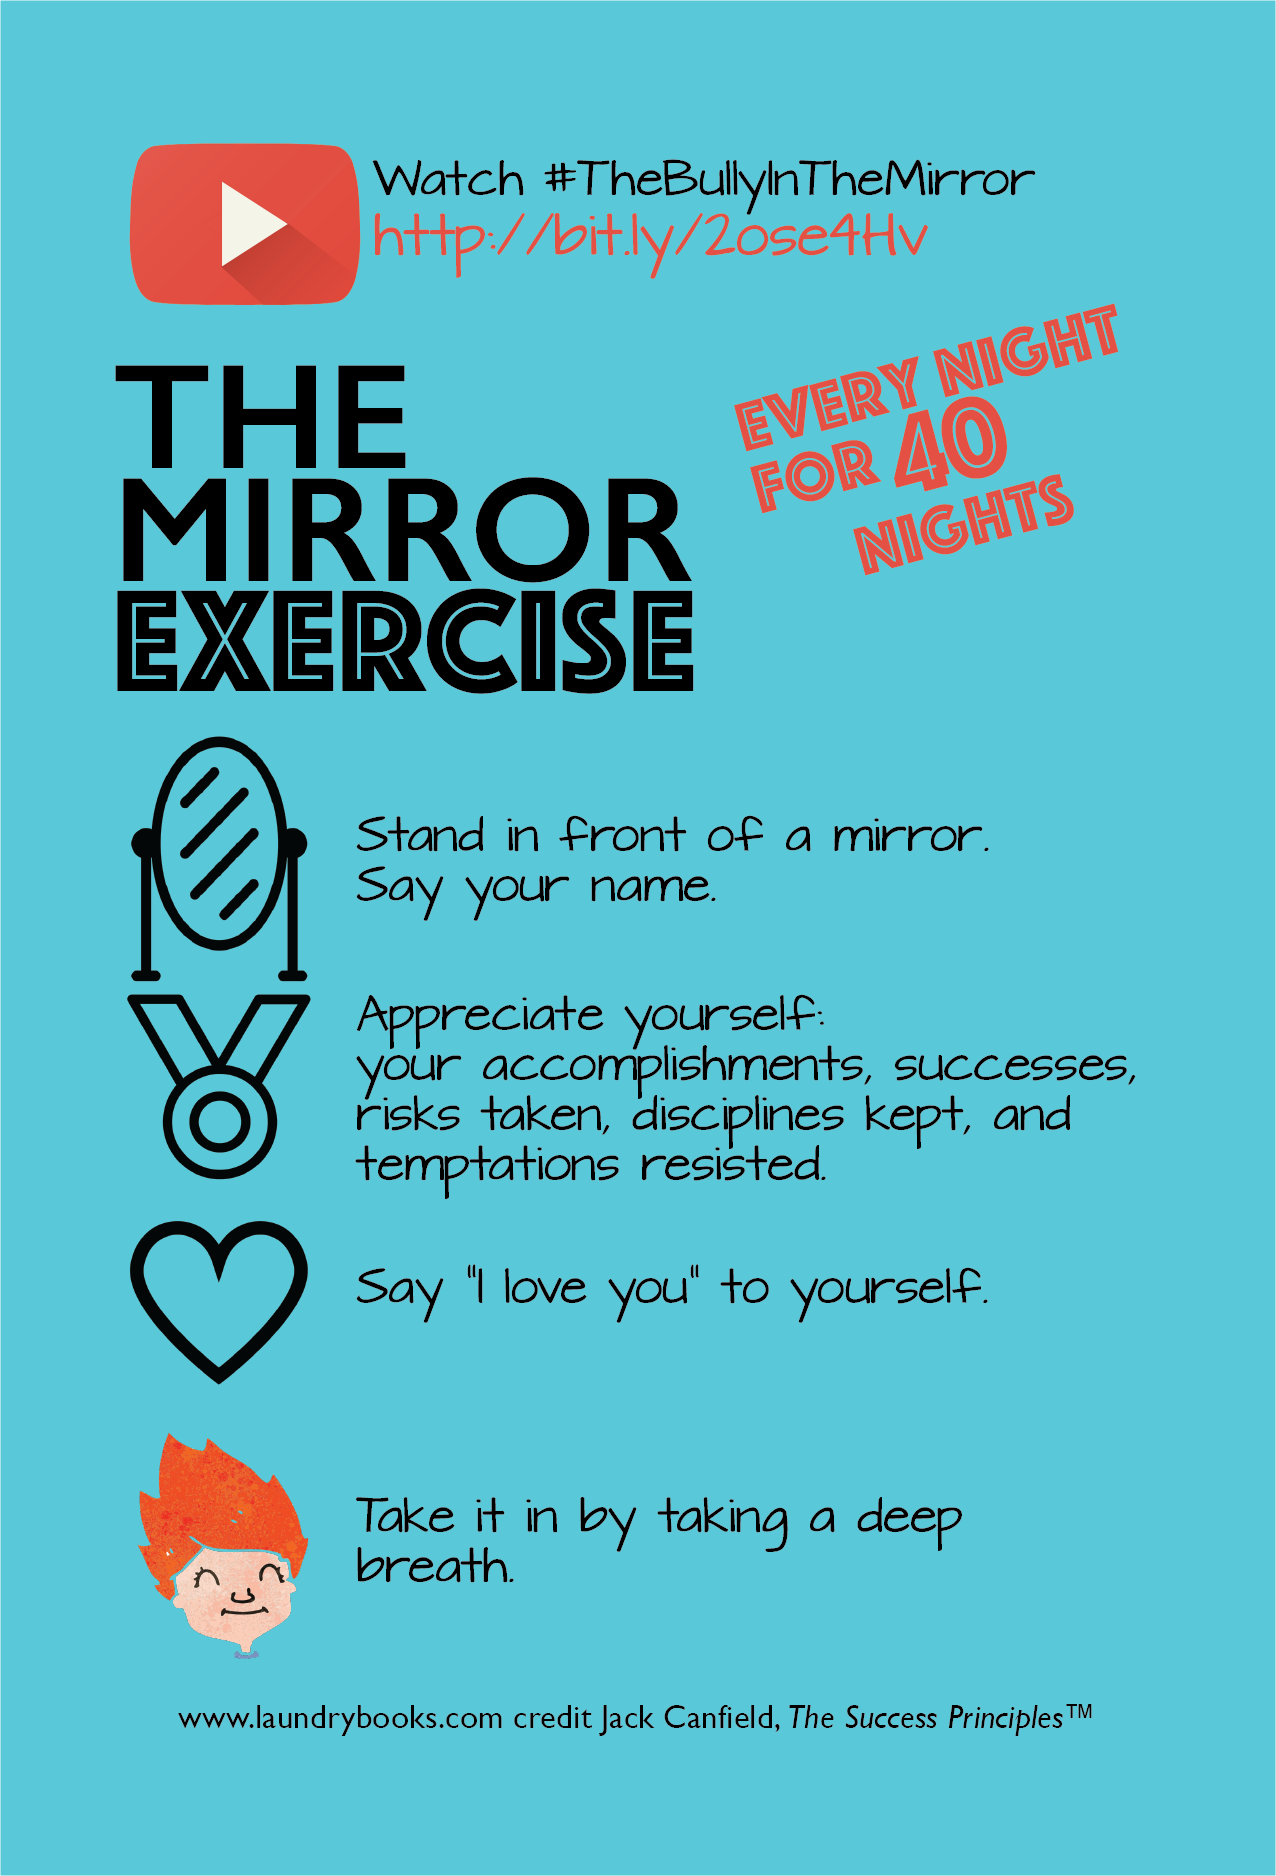 Mirror Exercise Build SelfEsteem How to build solid